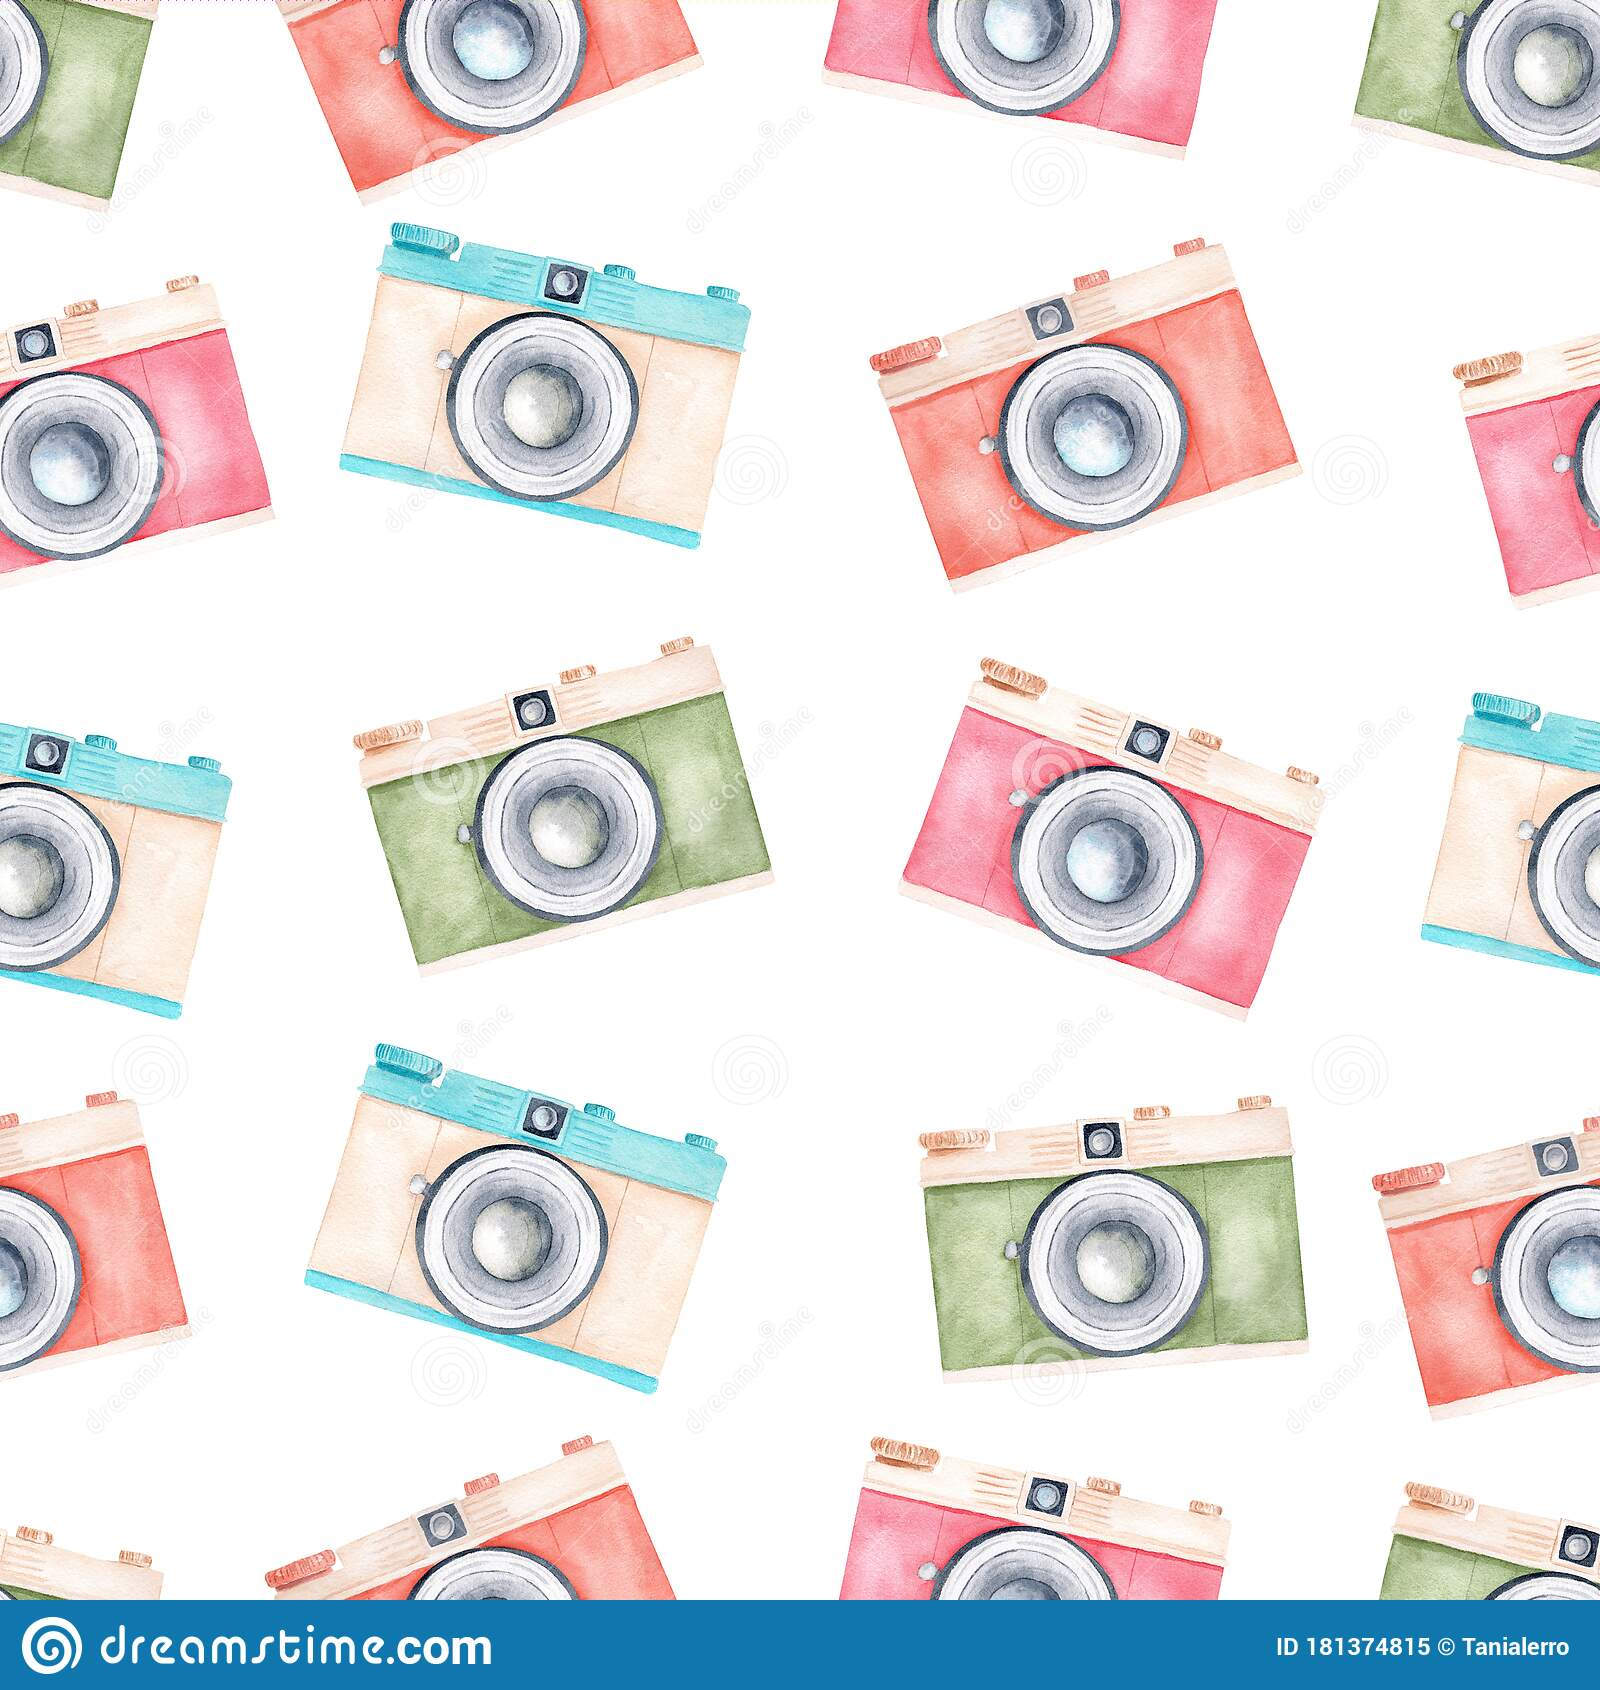 Watercolor Pastel Color Vintage Retro Cameras Clipart Seamless Pattern Digital Paper Stock Illustration Illustration Of Isolated Photograph 181374815